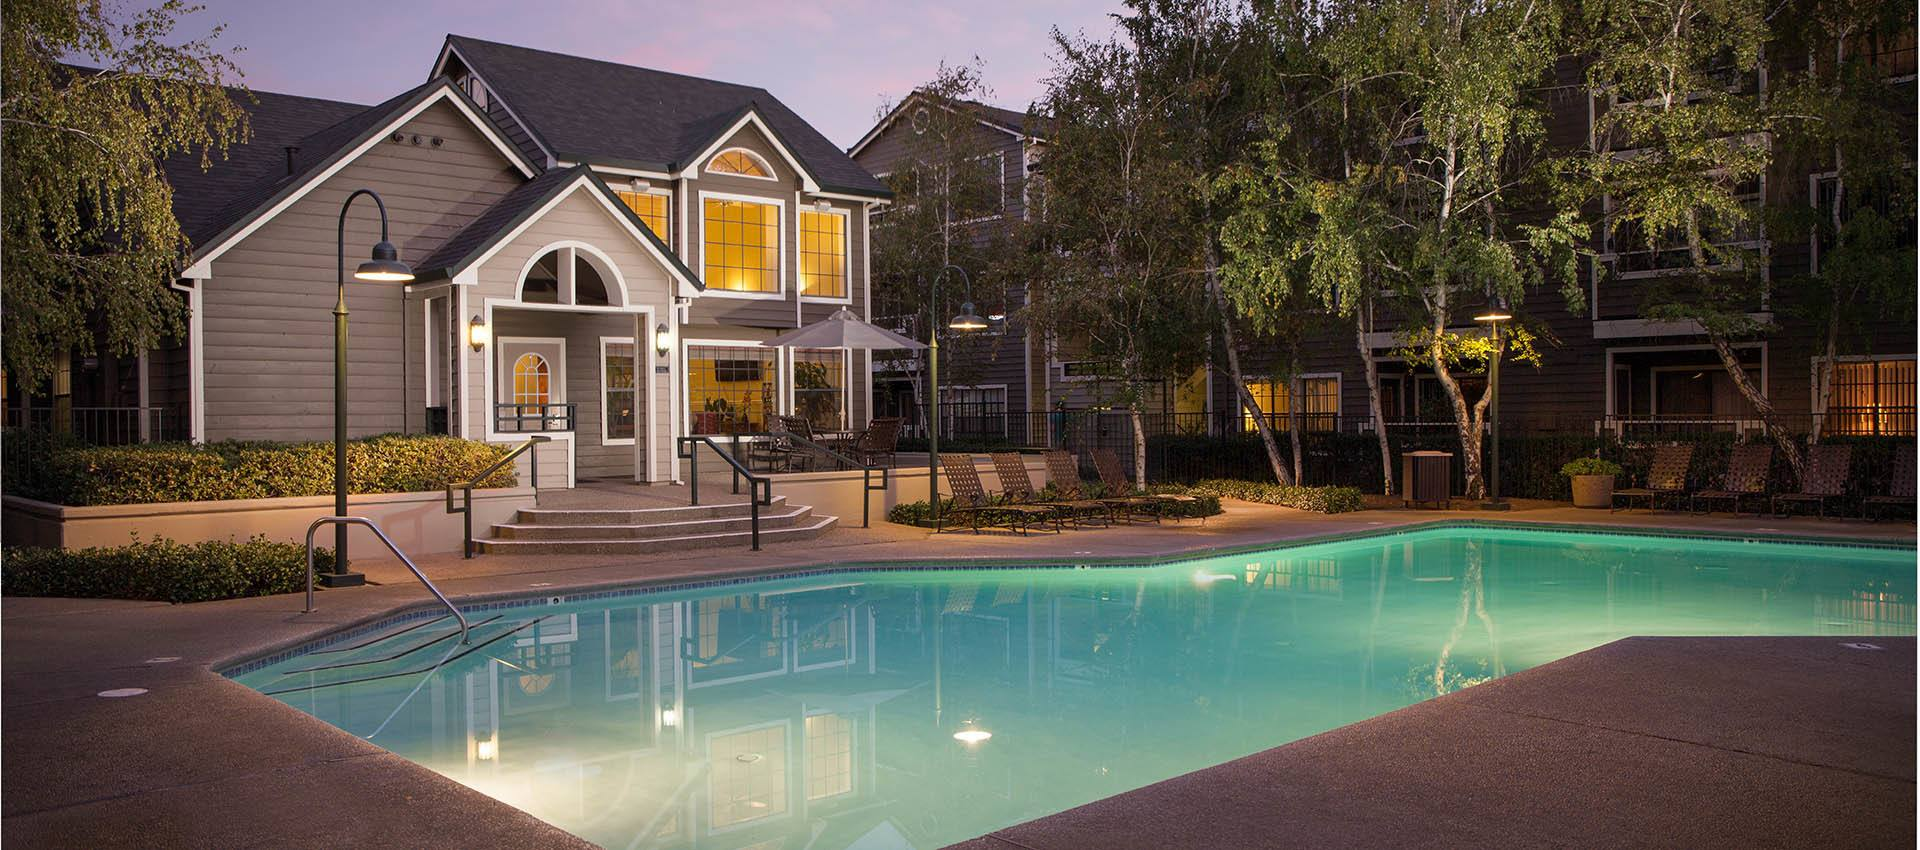 Clubhouse And Resort Style Pool at Reserve at Capital Center Apartment Homes in Rancho Cordova, CA